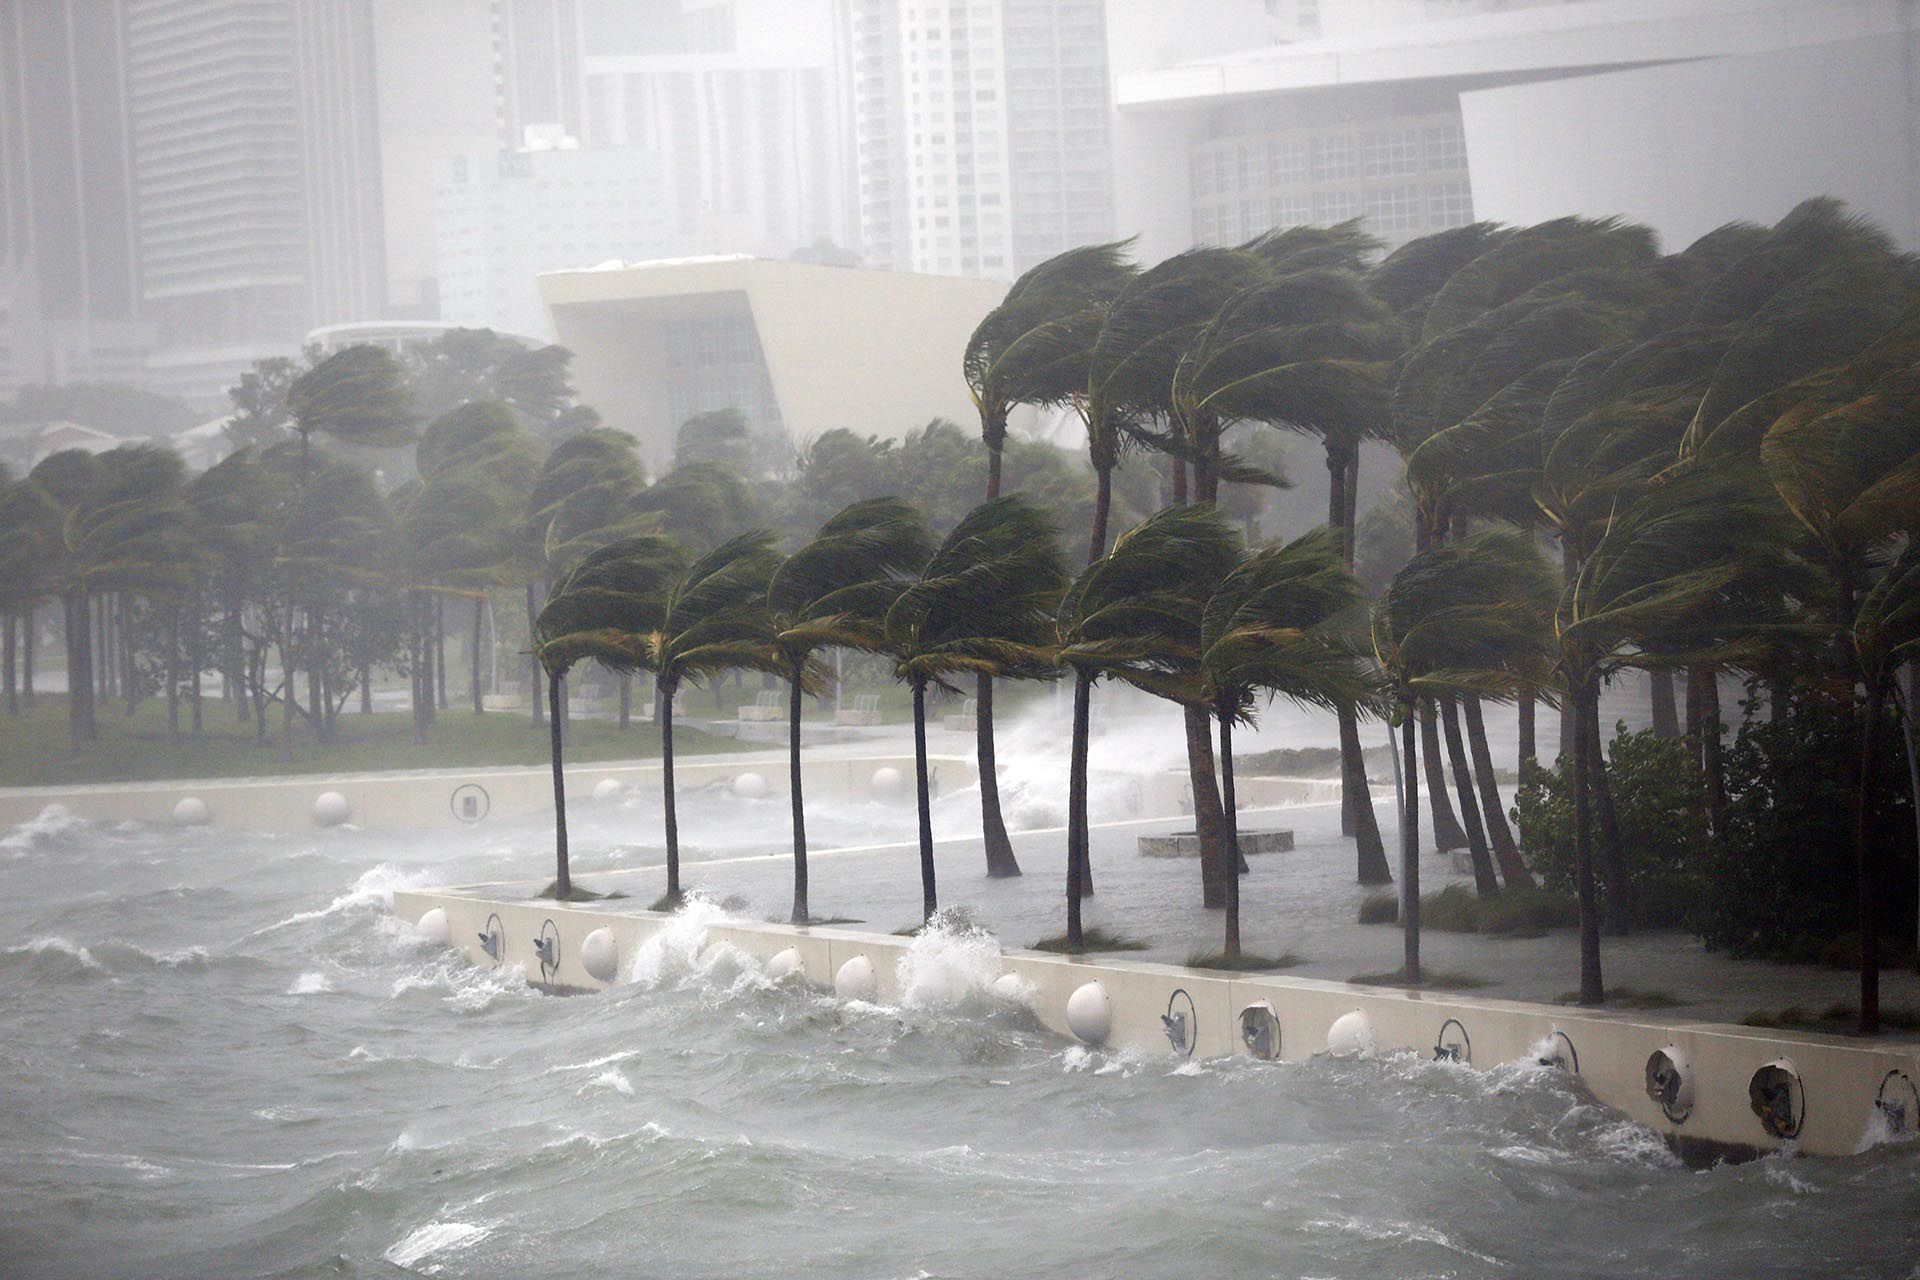 Waves crash over a seawall from Biscayne Bay as Hurricane Irma passes by, Sunday, Sept. 10, 2017, in Miami. (AP Photo/Wilfredo Lee)